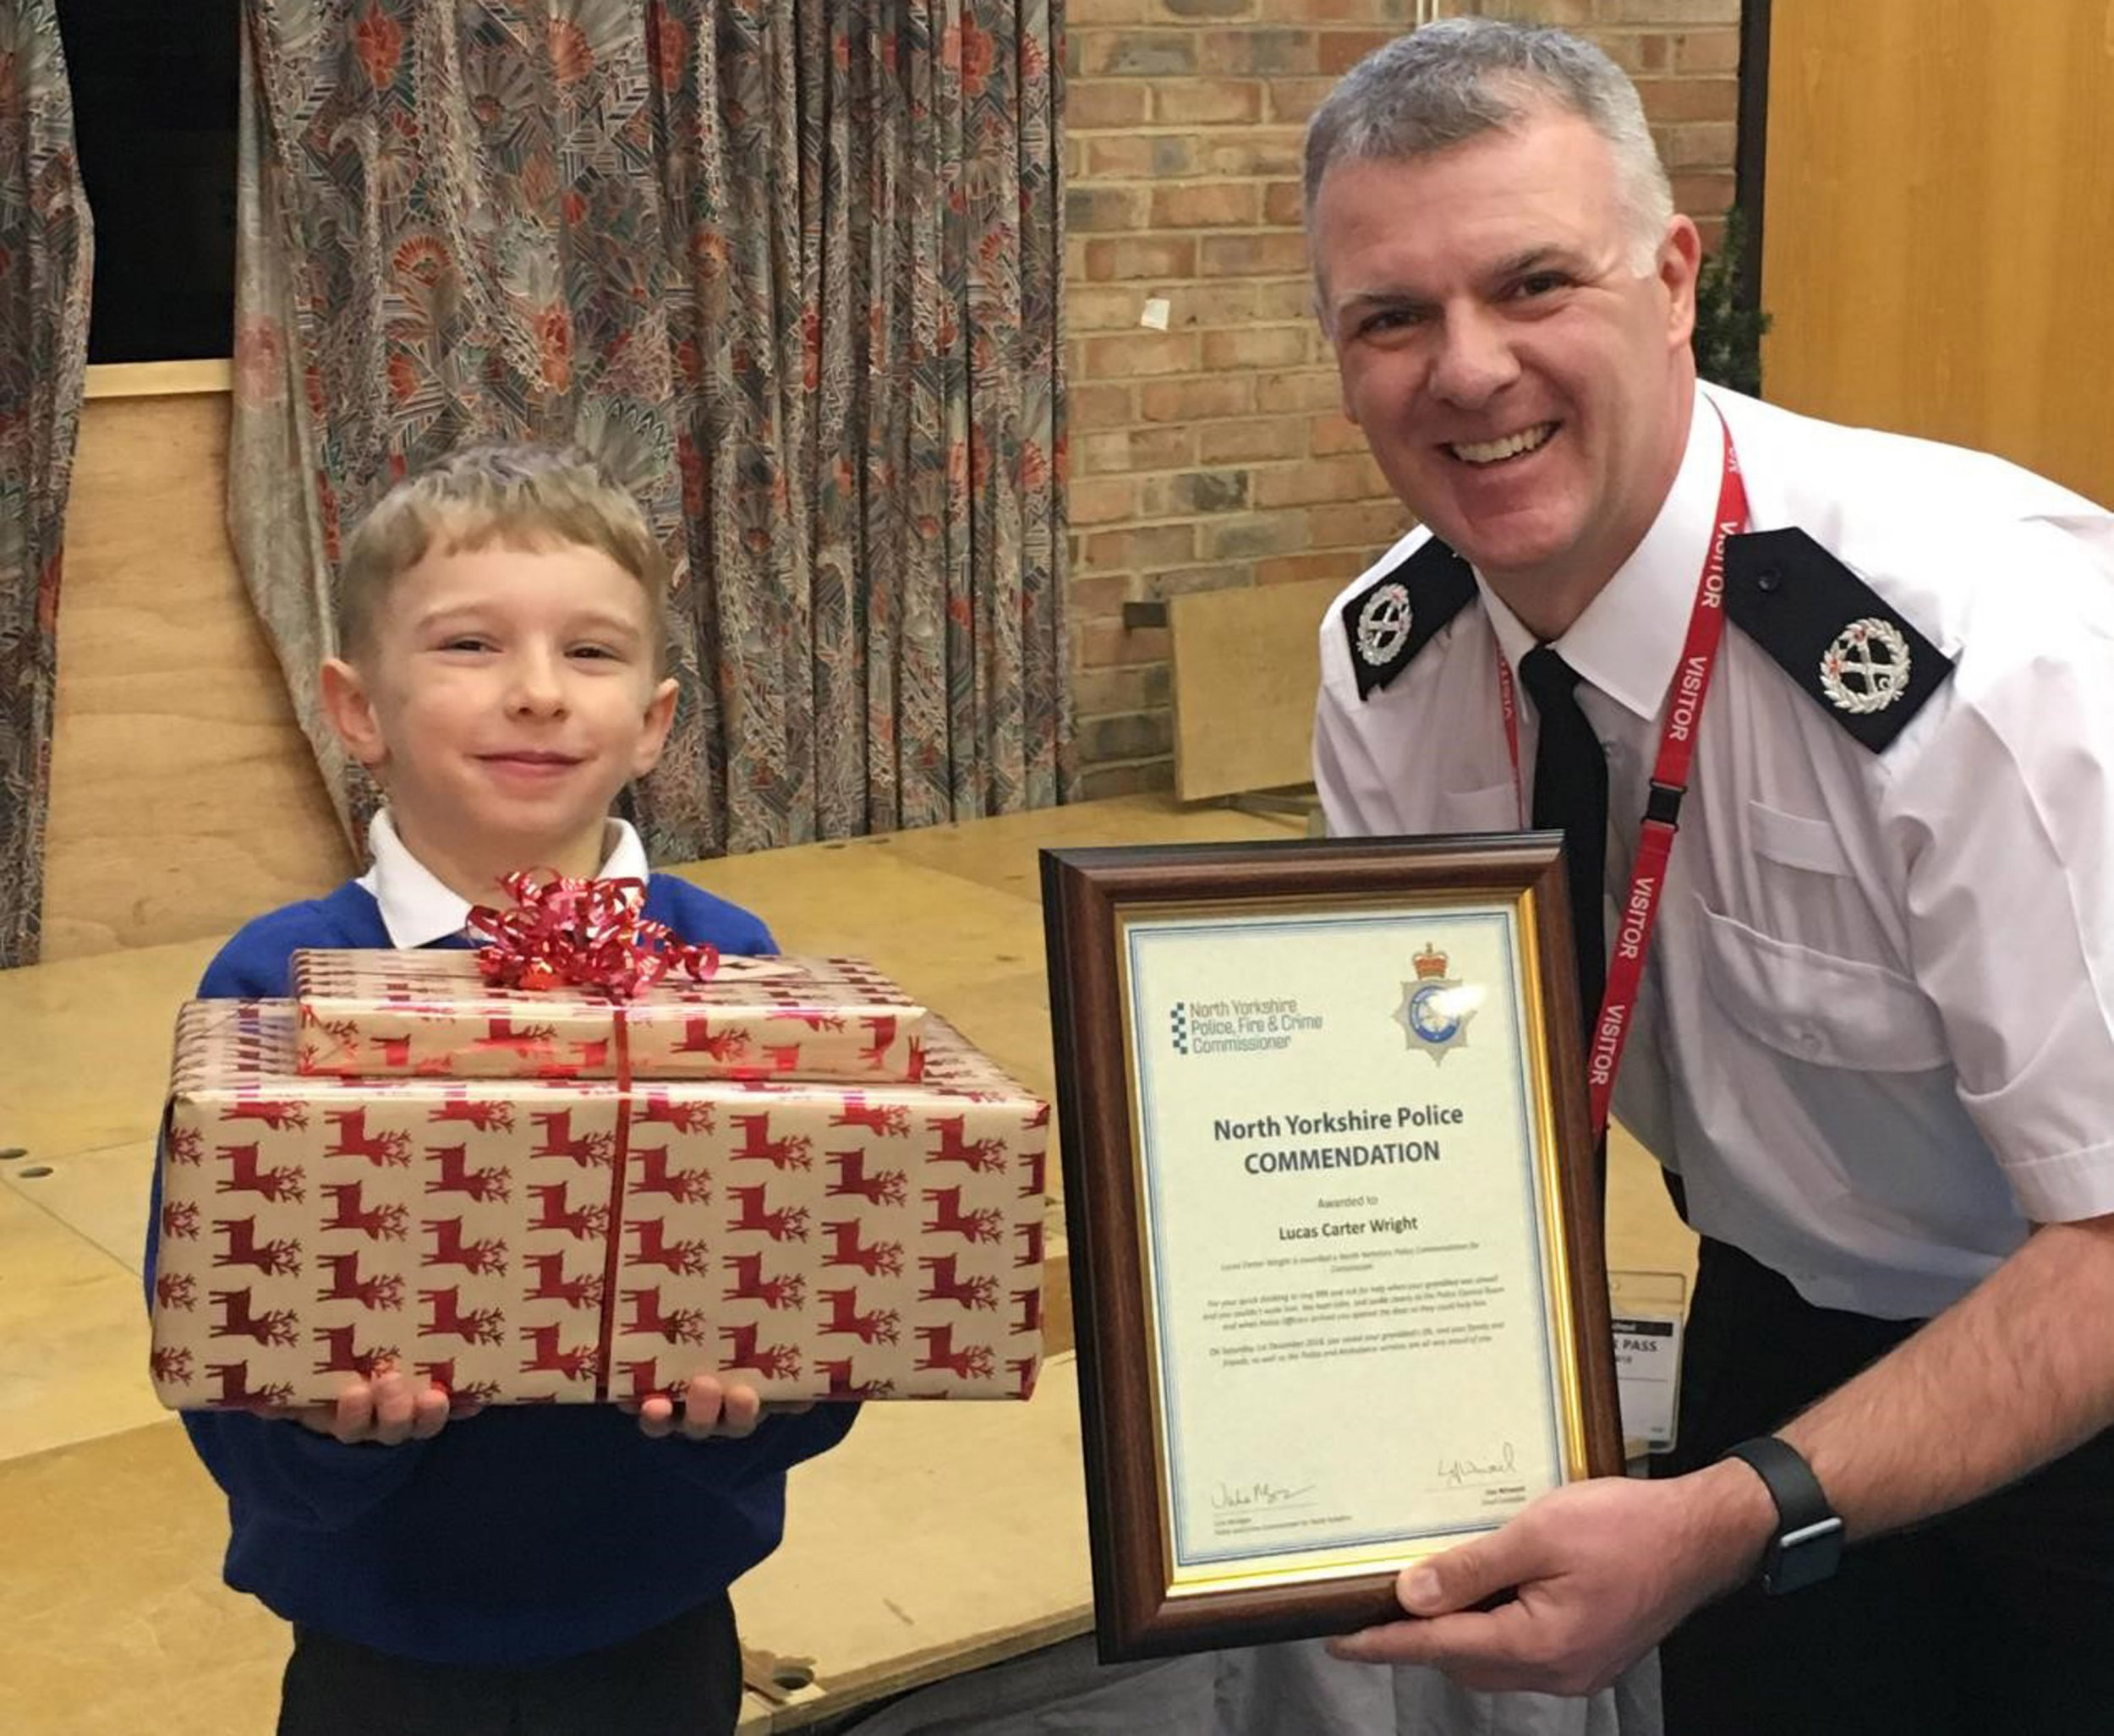 Undated handout photo issued by North Yorkshire Police of Lucas Carter Wright and ACC Ciaron Irvine, the five-year-old boy has been praised for calling 999 after his Grandad fell ill at his home in North Yorkshire. PRESS ASSOCIATION Photo. Issue date: Tuesday December 4, 2018. Lucas had been staying with his Grandad for the night but woke to find him unconscious on the sofa, Communications Officer Gabby Rudge-Cox, who handled Lucas? call, was able to retrieve enough information from him to determine his Grandad needed emergency services. See PA story HEALTH Lucas. Photo credit should read: North Yorkshire Police/PA Wire NOTE TO EDITORS: This handout photo may only be used in for editorial reporting purposes for the contemporaneous illustration of events, things or the people in the image or facts mentioned in the caption. Reuse of the picture may require further permission from the copyright holder.